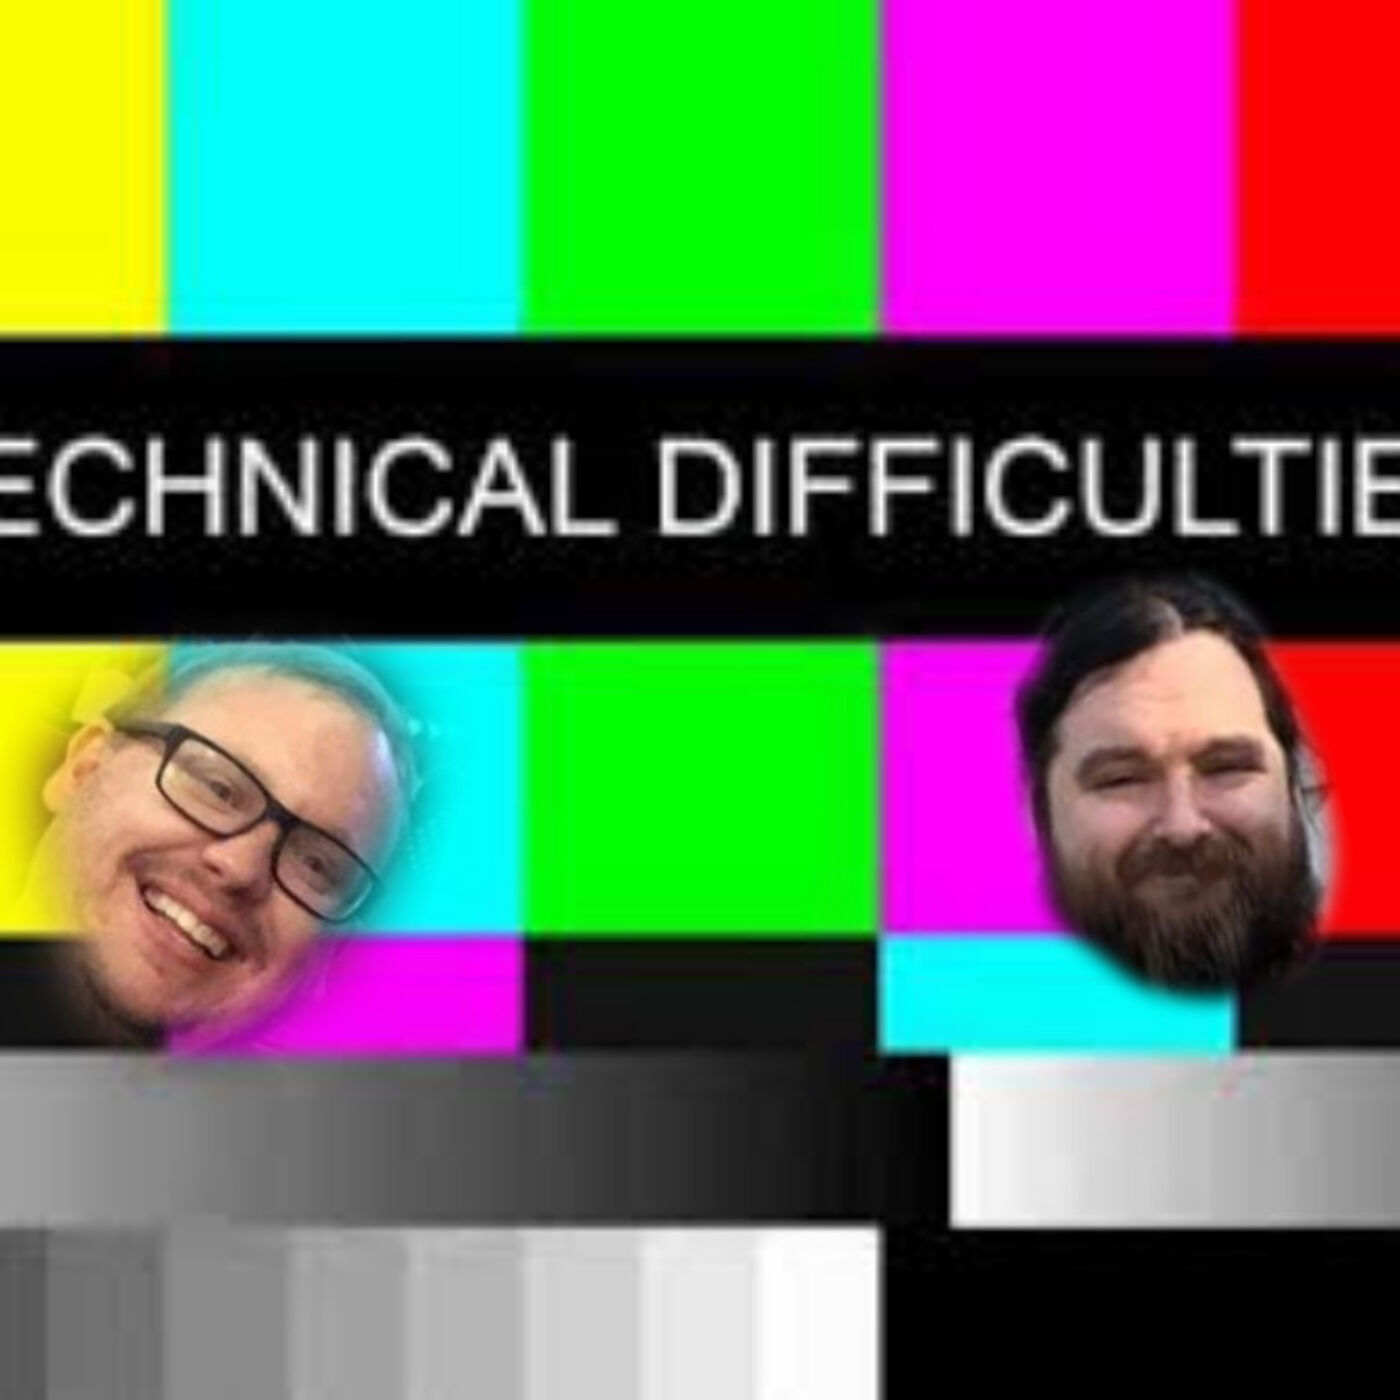 New year, new technical difficulties